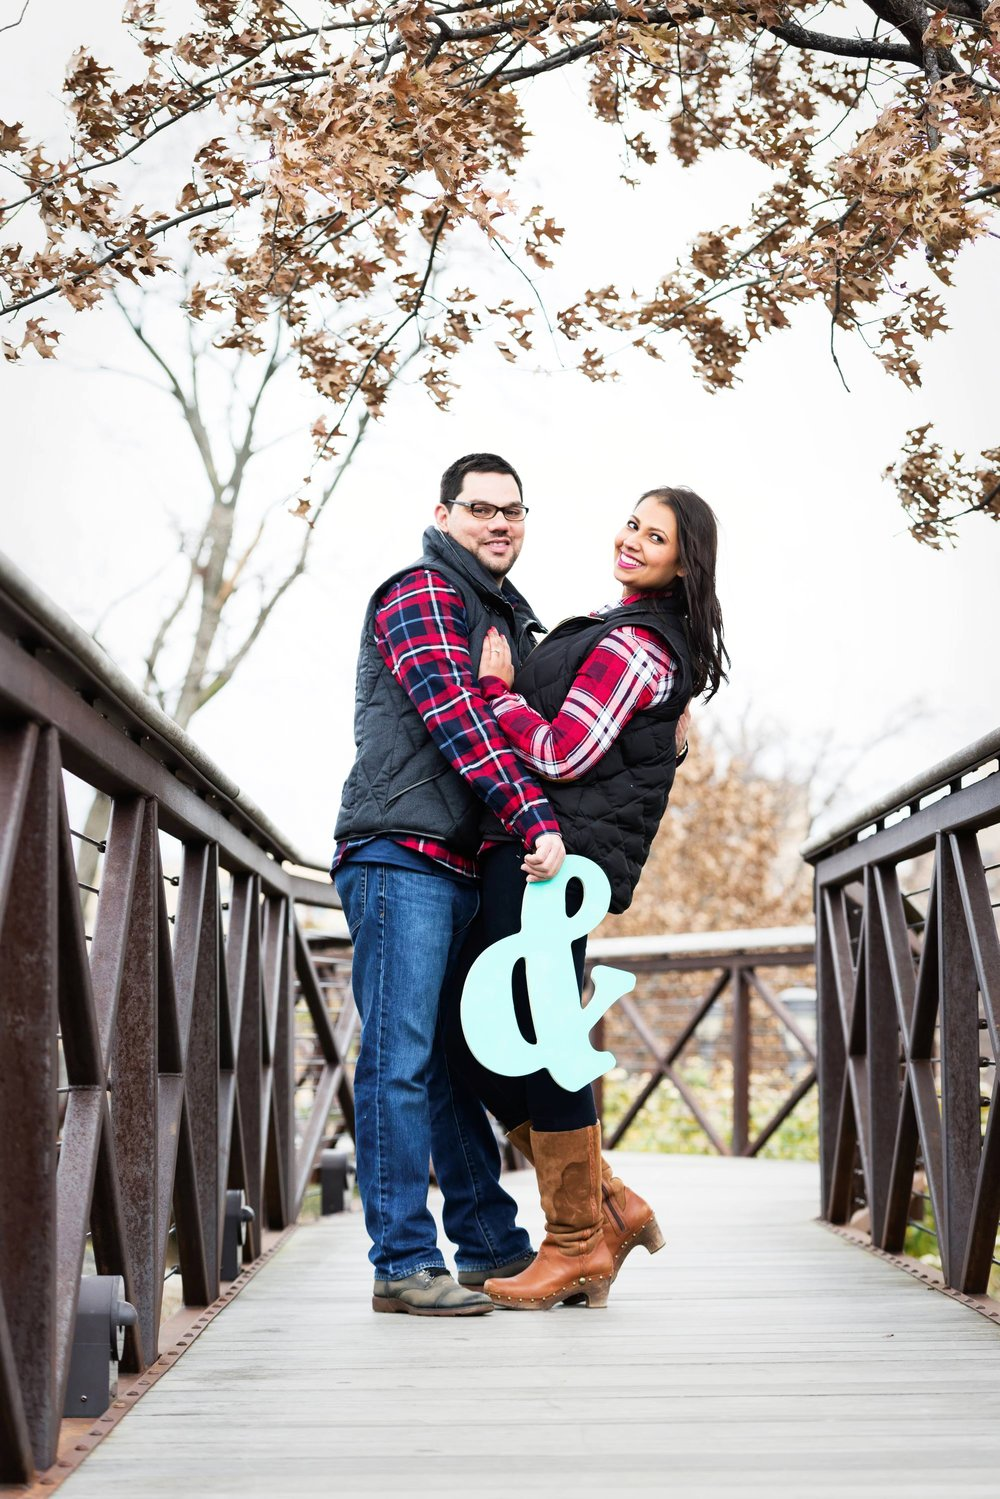 Engagement photographs can be used to make customized save the date cards by adding a personal message to it. Bring a few props to the shoot can be a good idea.